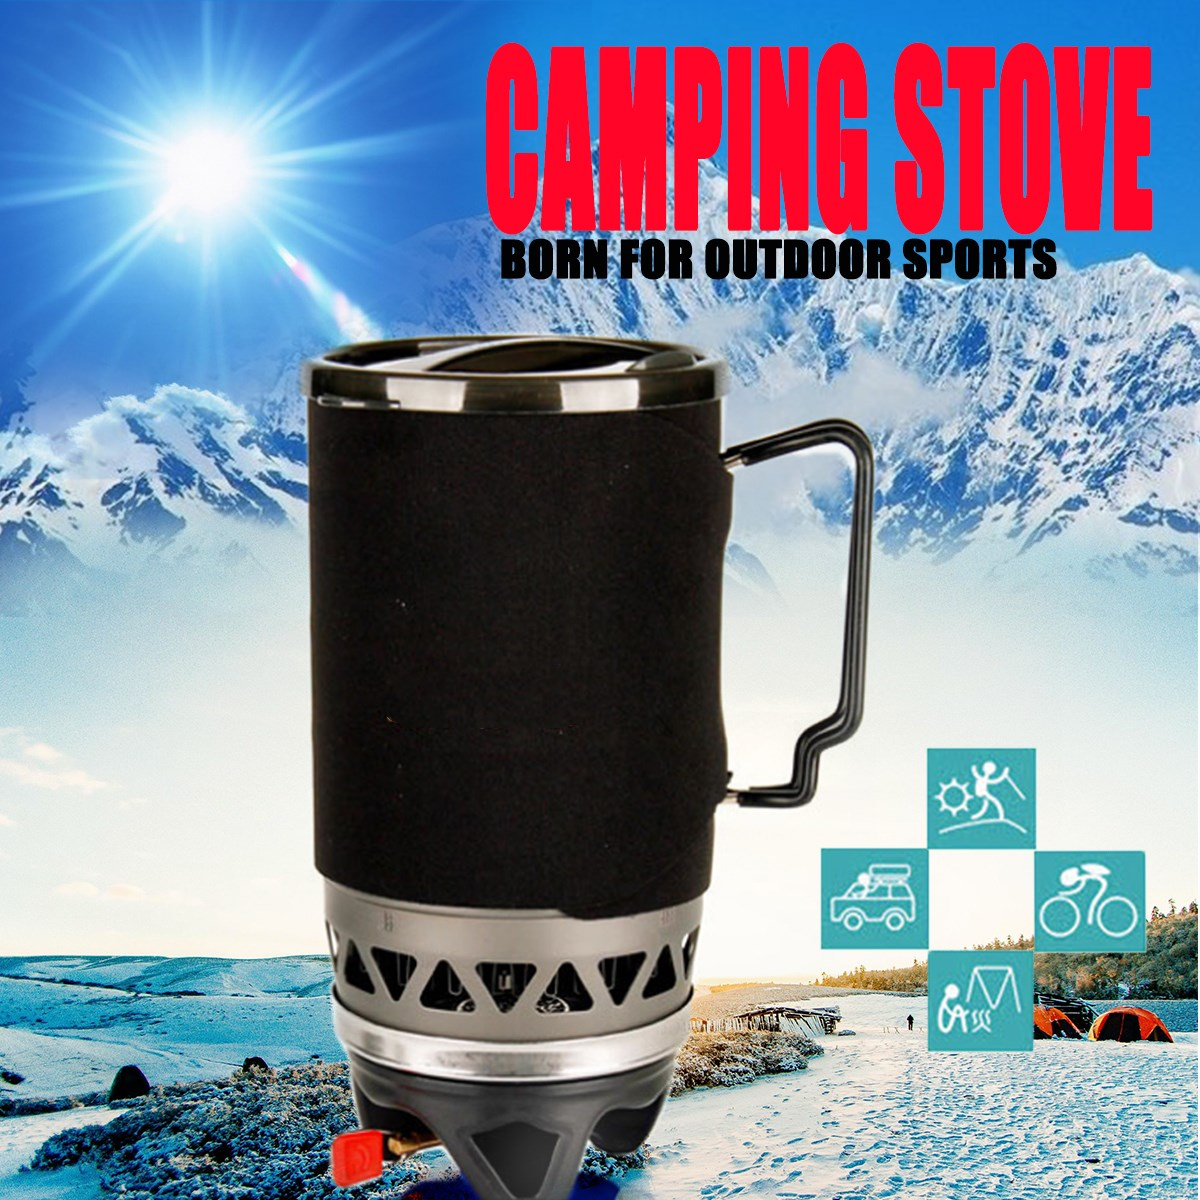 Sports & Entertainment Camping & Hiking Boruit Light Solid Fuel Alcohol Stove Portable Camping Barbecue Oven Mini Picnic Stove For Camping Barbecue Street Price